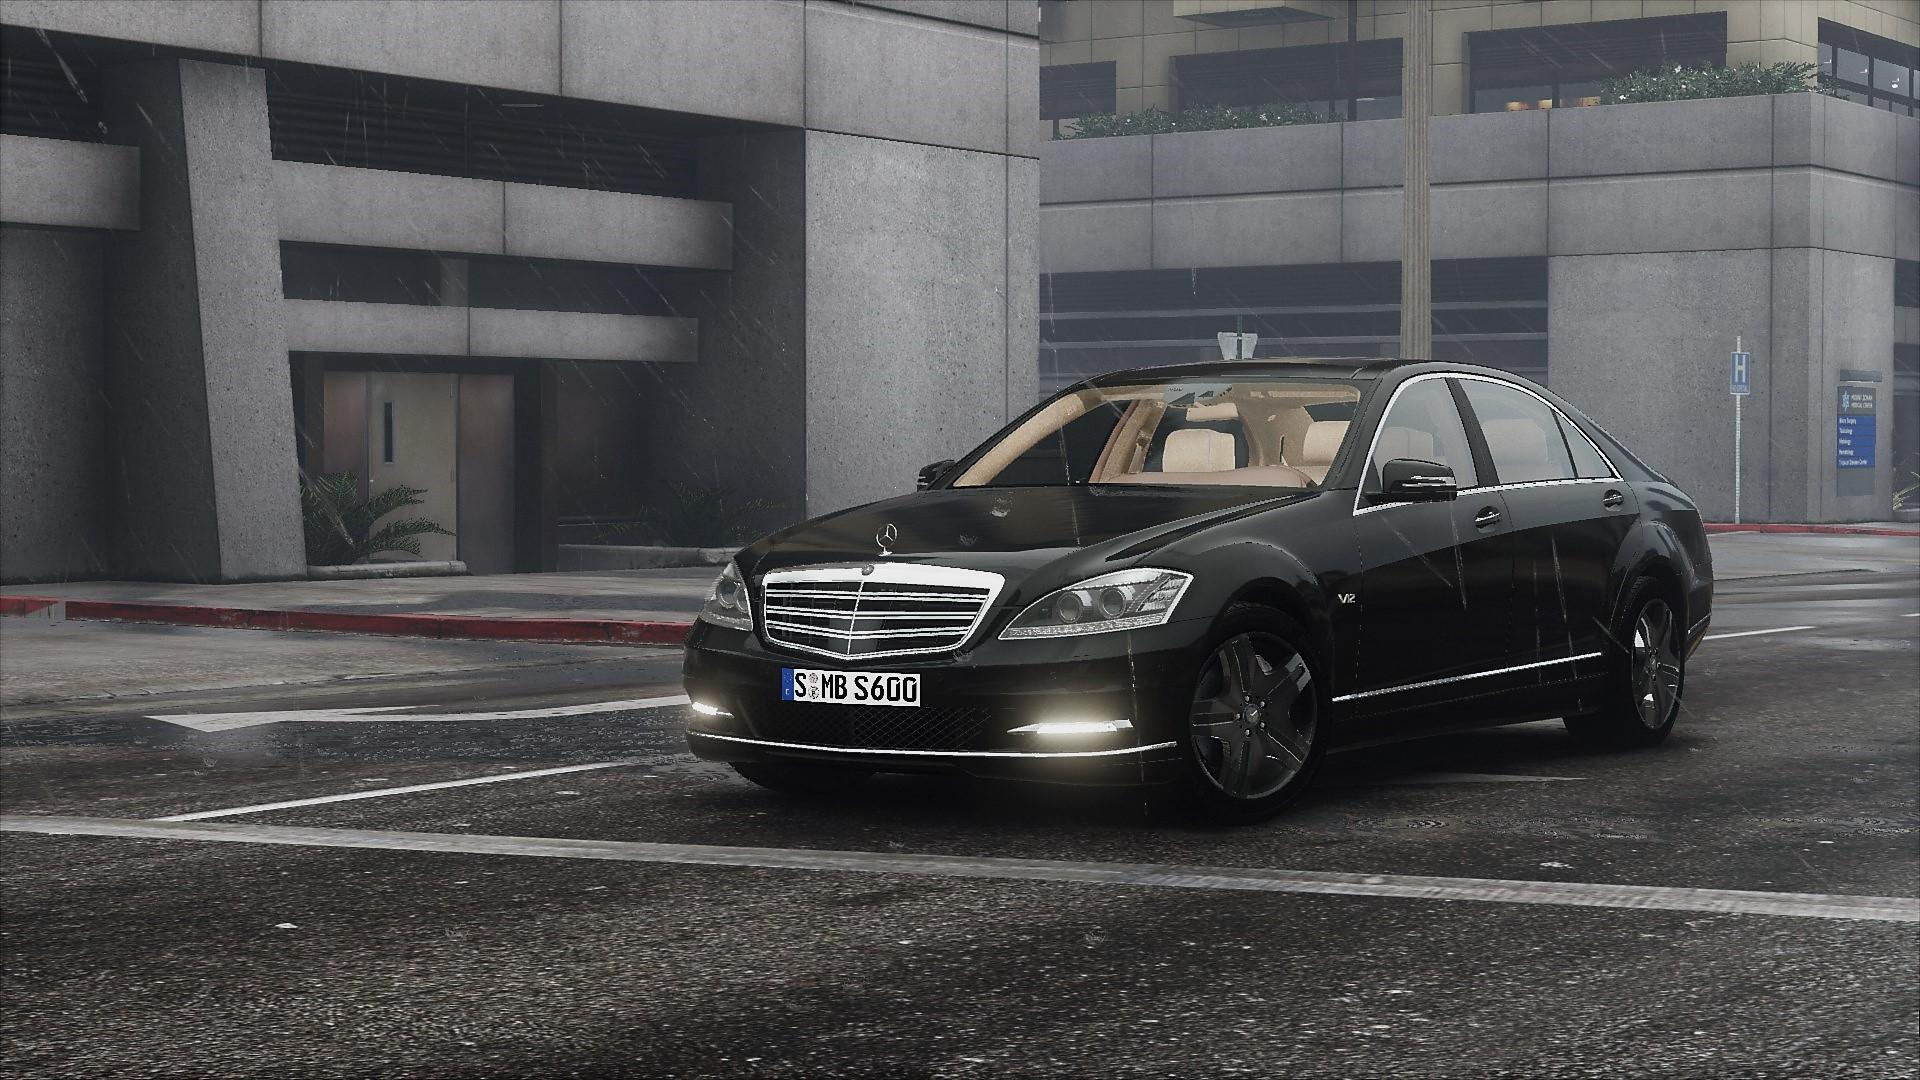 2010 mercedes benz s600 l w221 add on tuning gta5 for Mercedes benz 600 amg